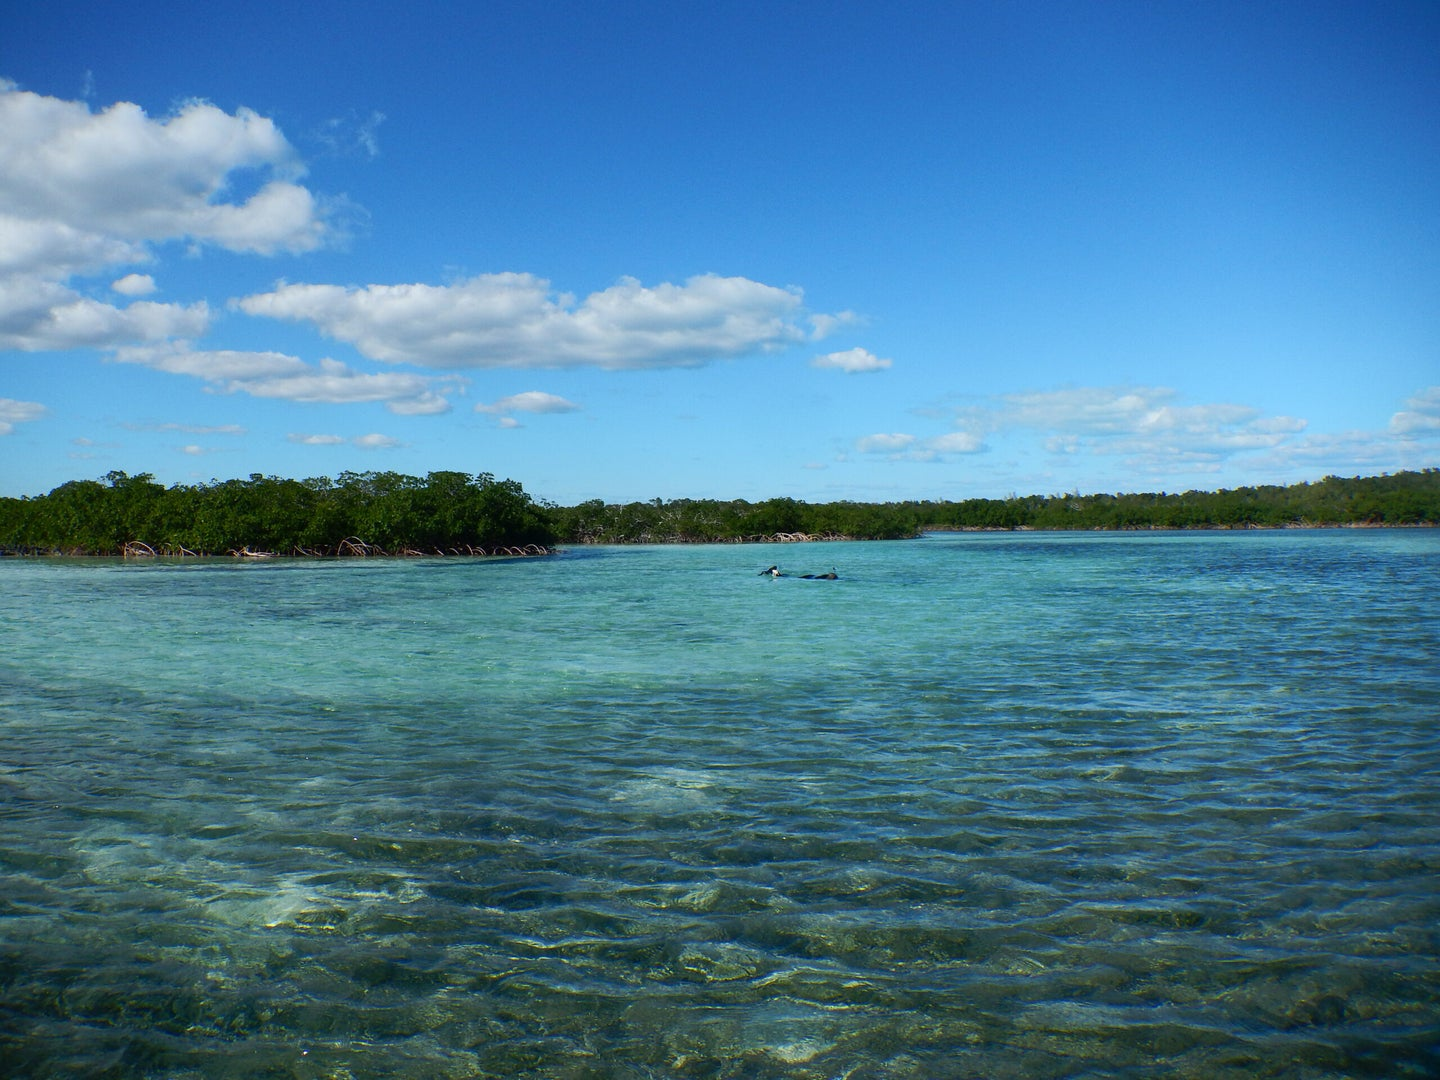 The mangrove-lined estuary on Abaco Island in the Bahamas.